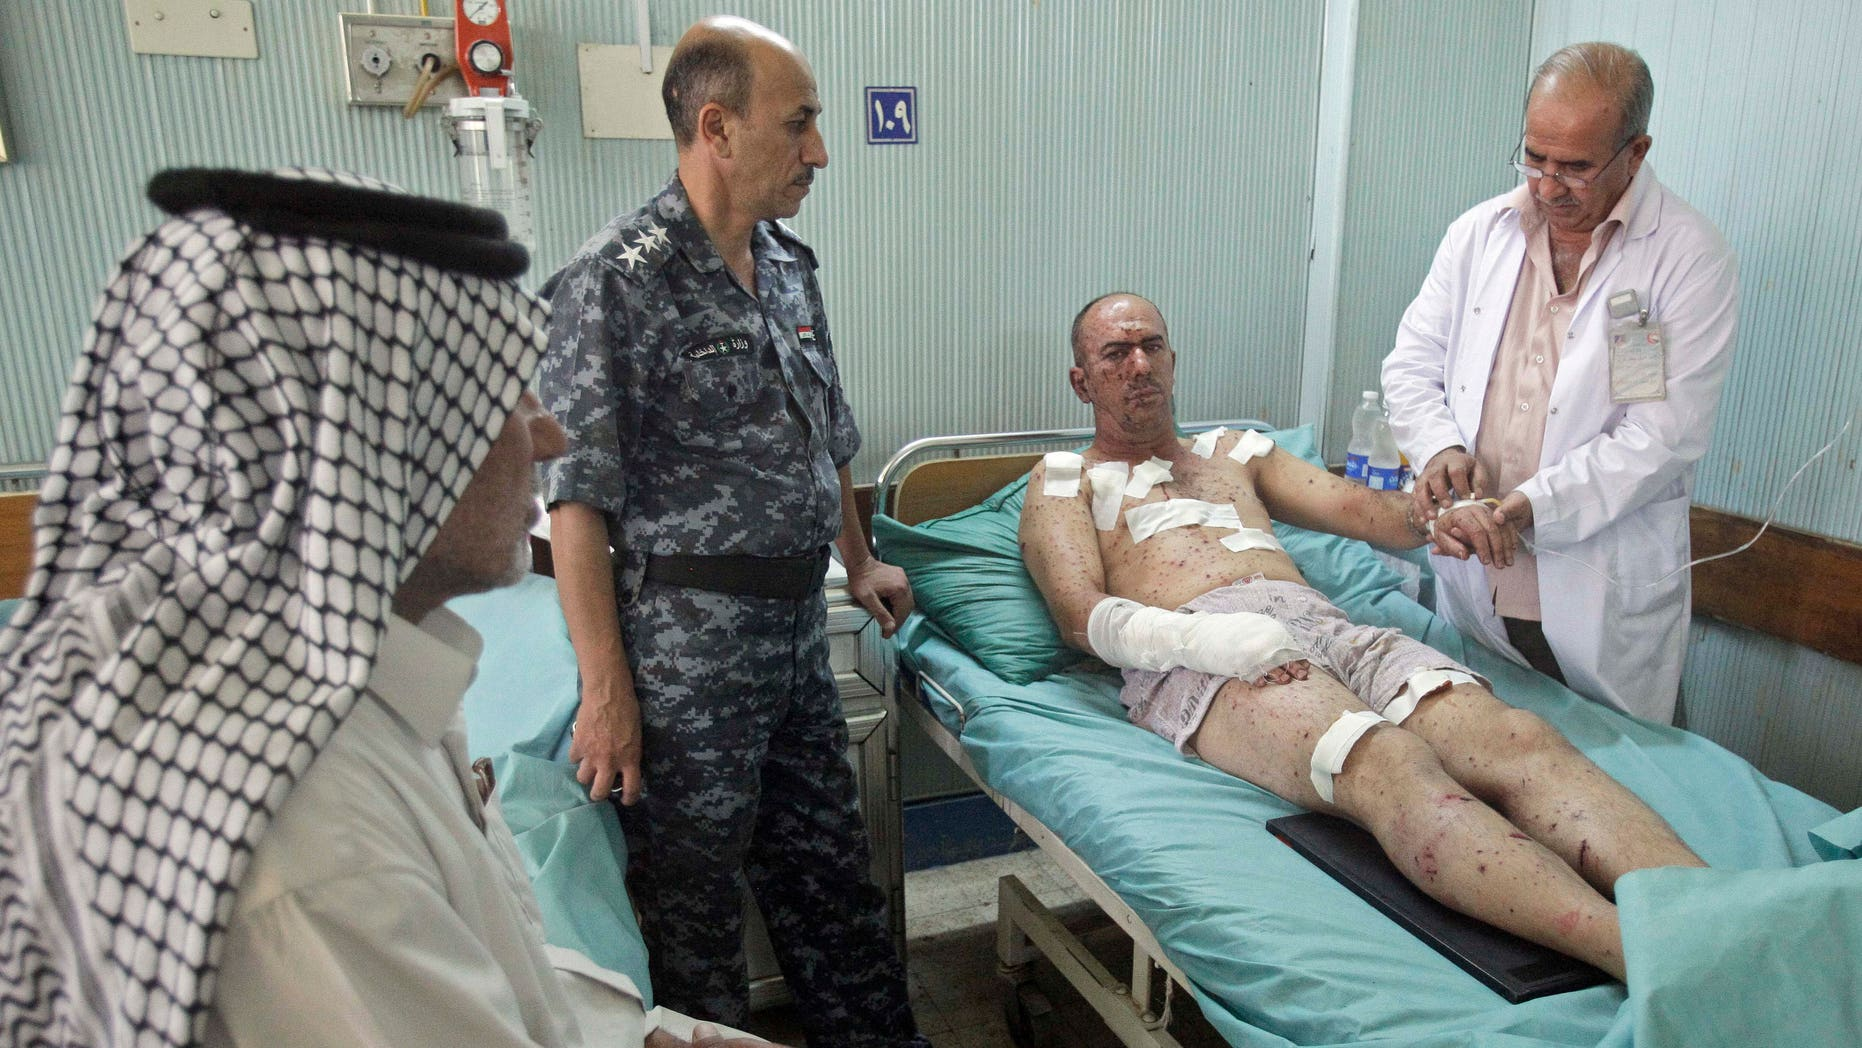 September 14: An Injured man receives treatment at a Hospital in Hillah, about 60 miles (95 kilometers) south of Baghdad, Iraq. A car bomb went off outside a restaurant where local police were having breakfast Wednesday morning, killing and wounding scores of people, police said.